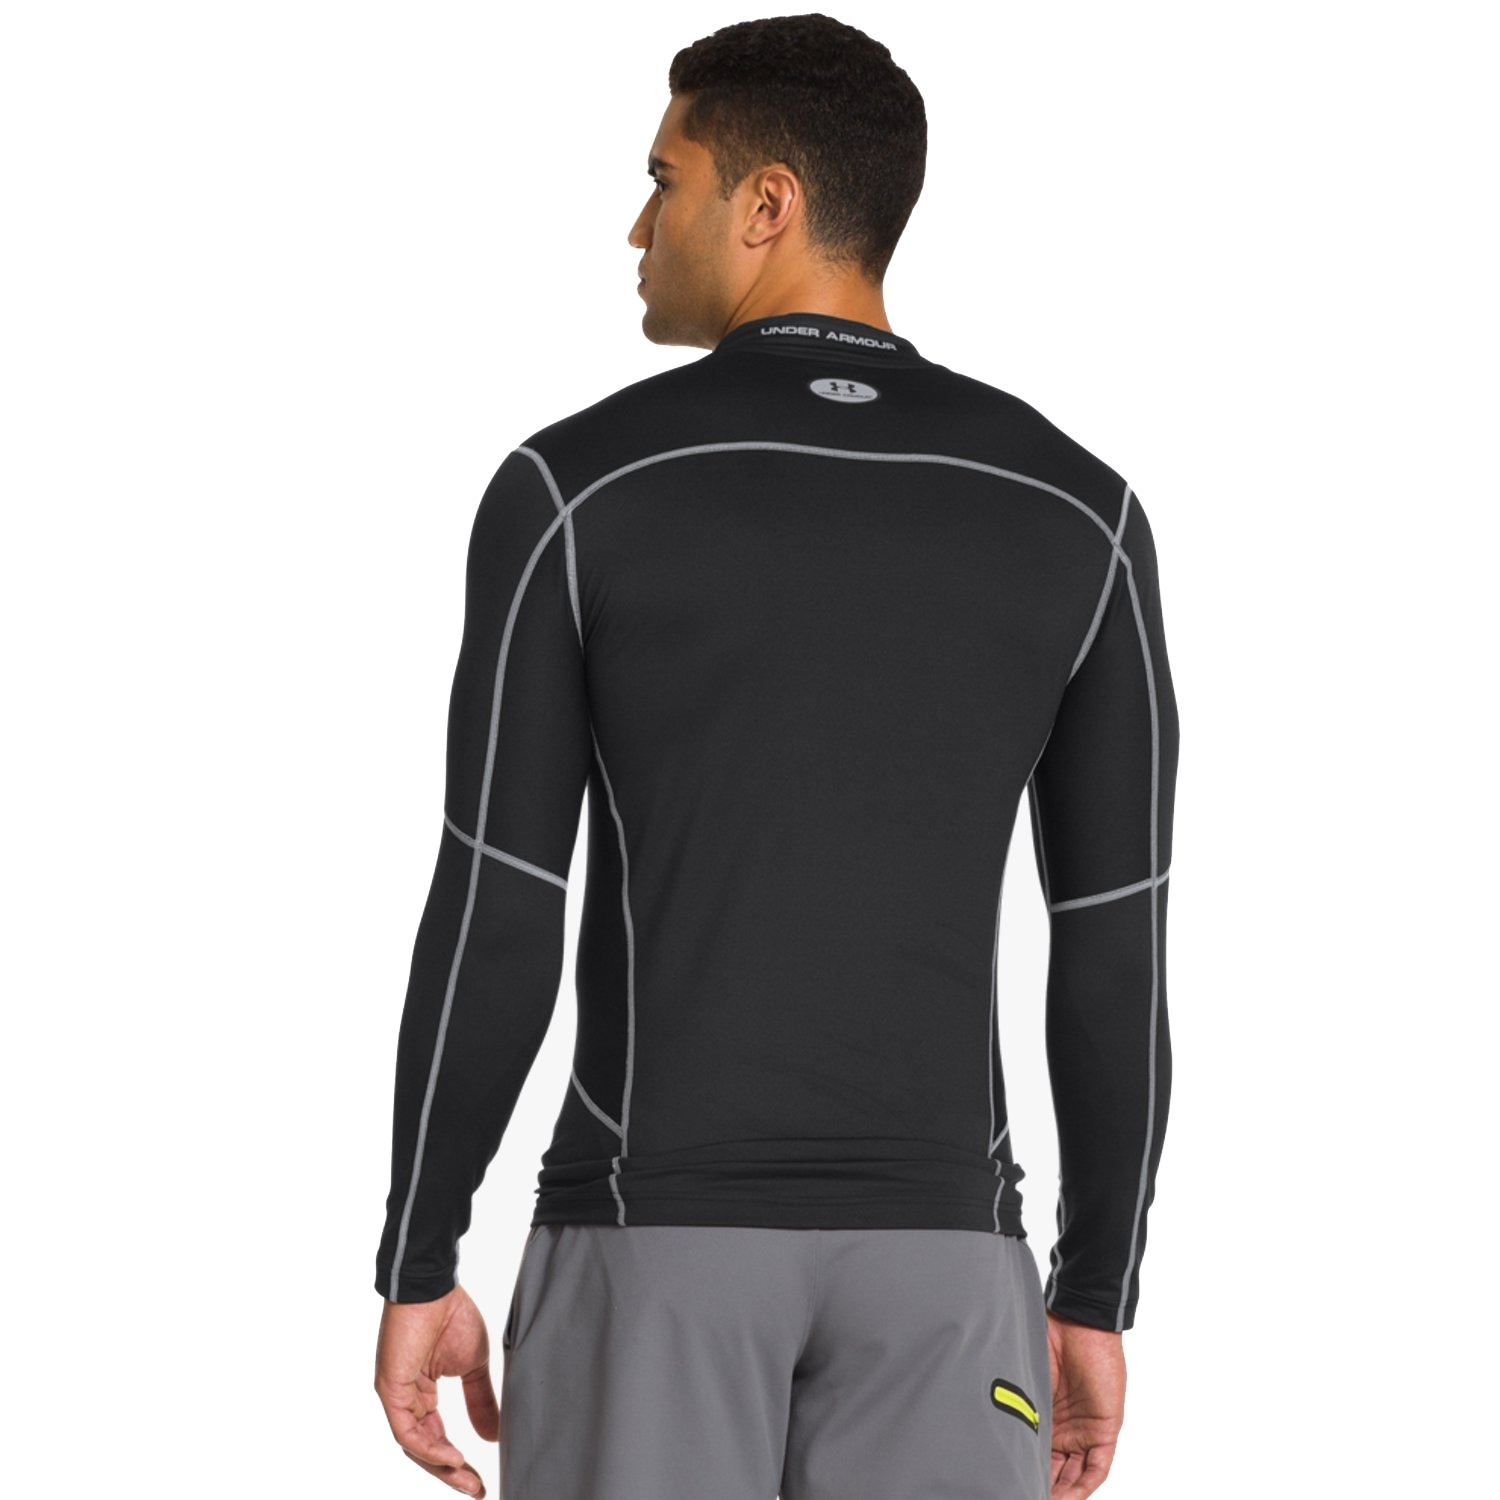 Cheap under armour compression uk Buy Online  OFF39% Discounted 594e6443a5e01